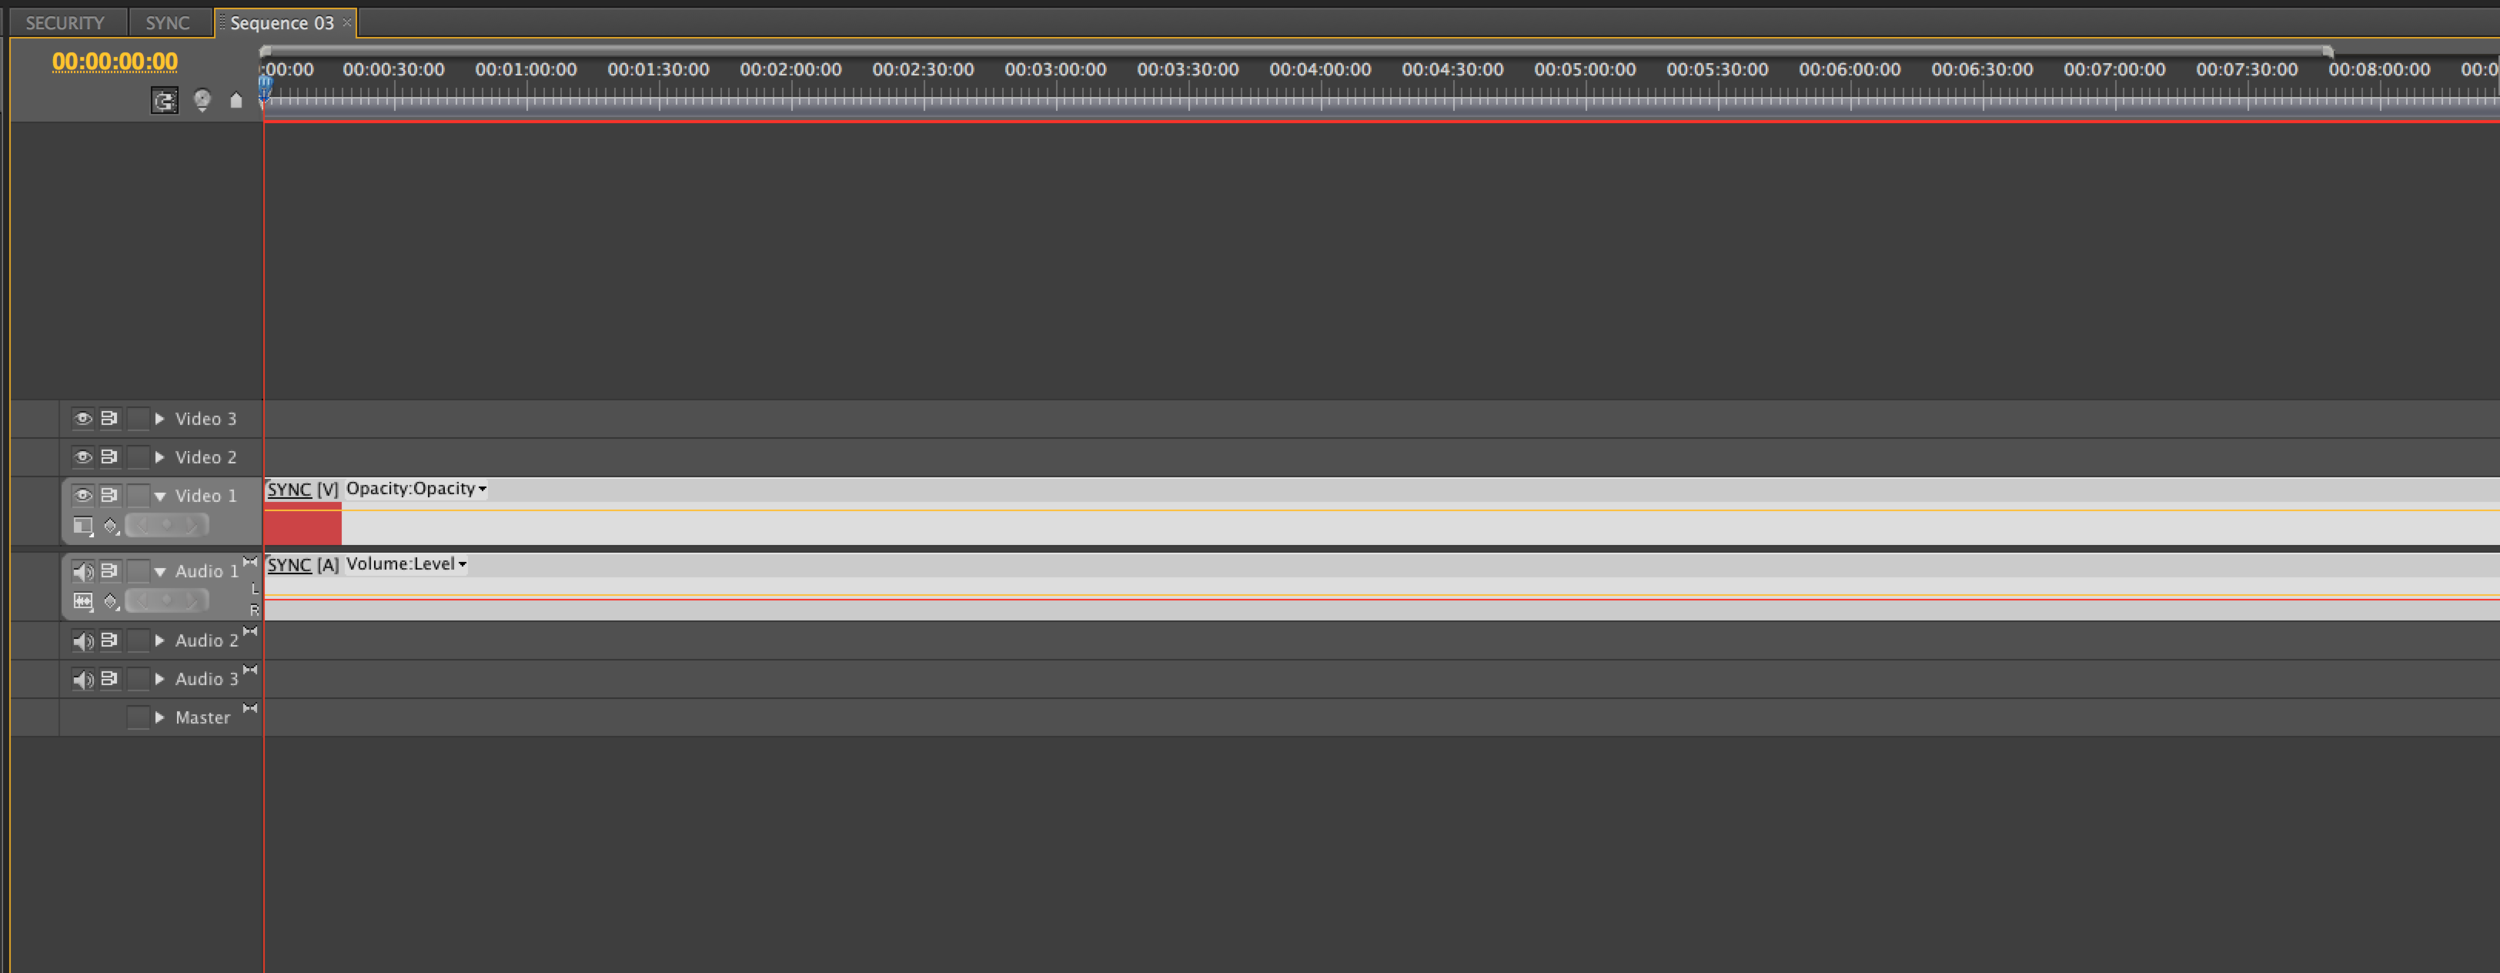 Here the EDIT timeline is named Sequence 03